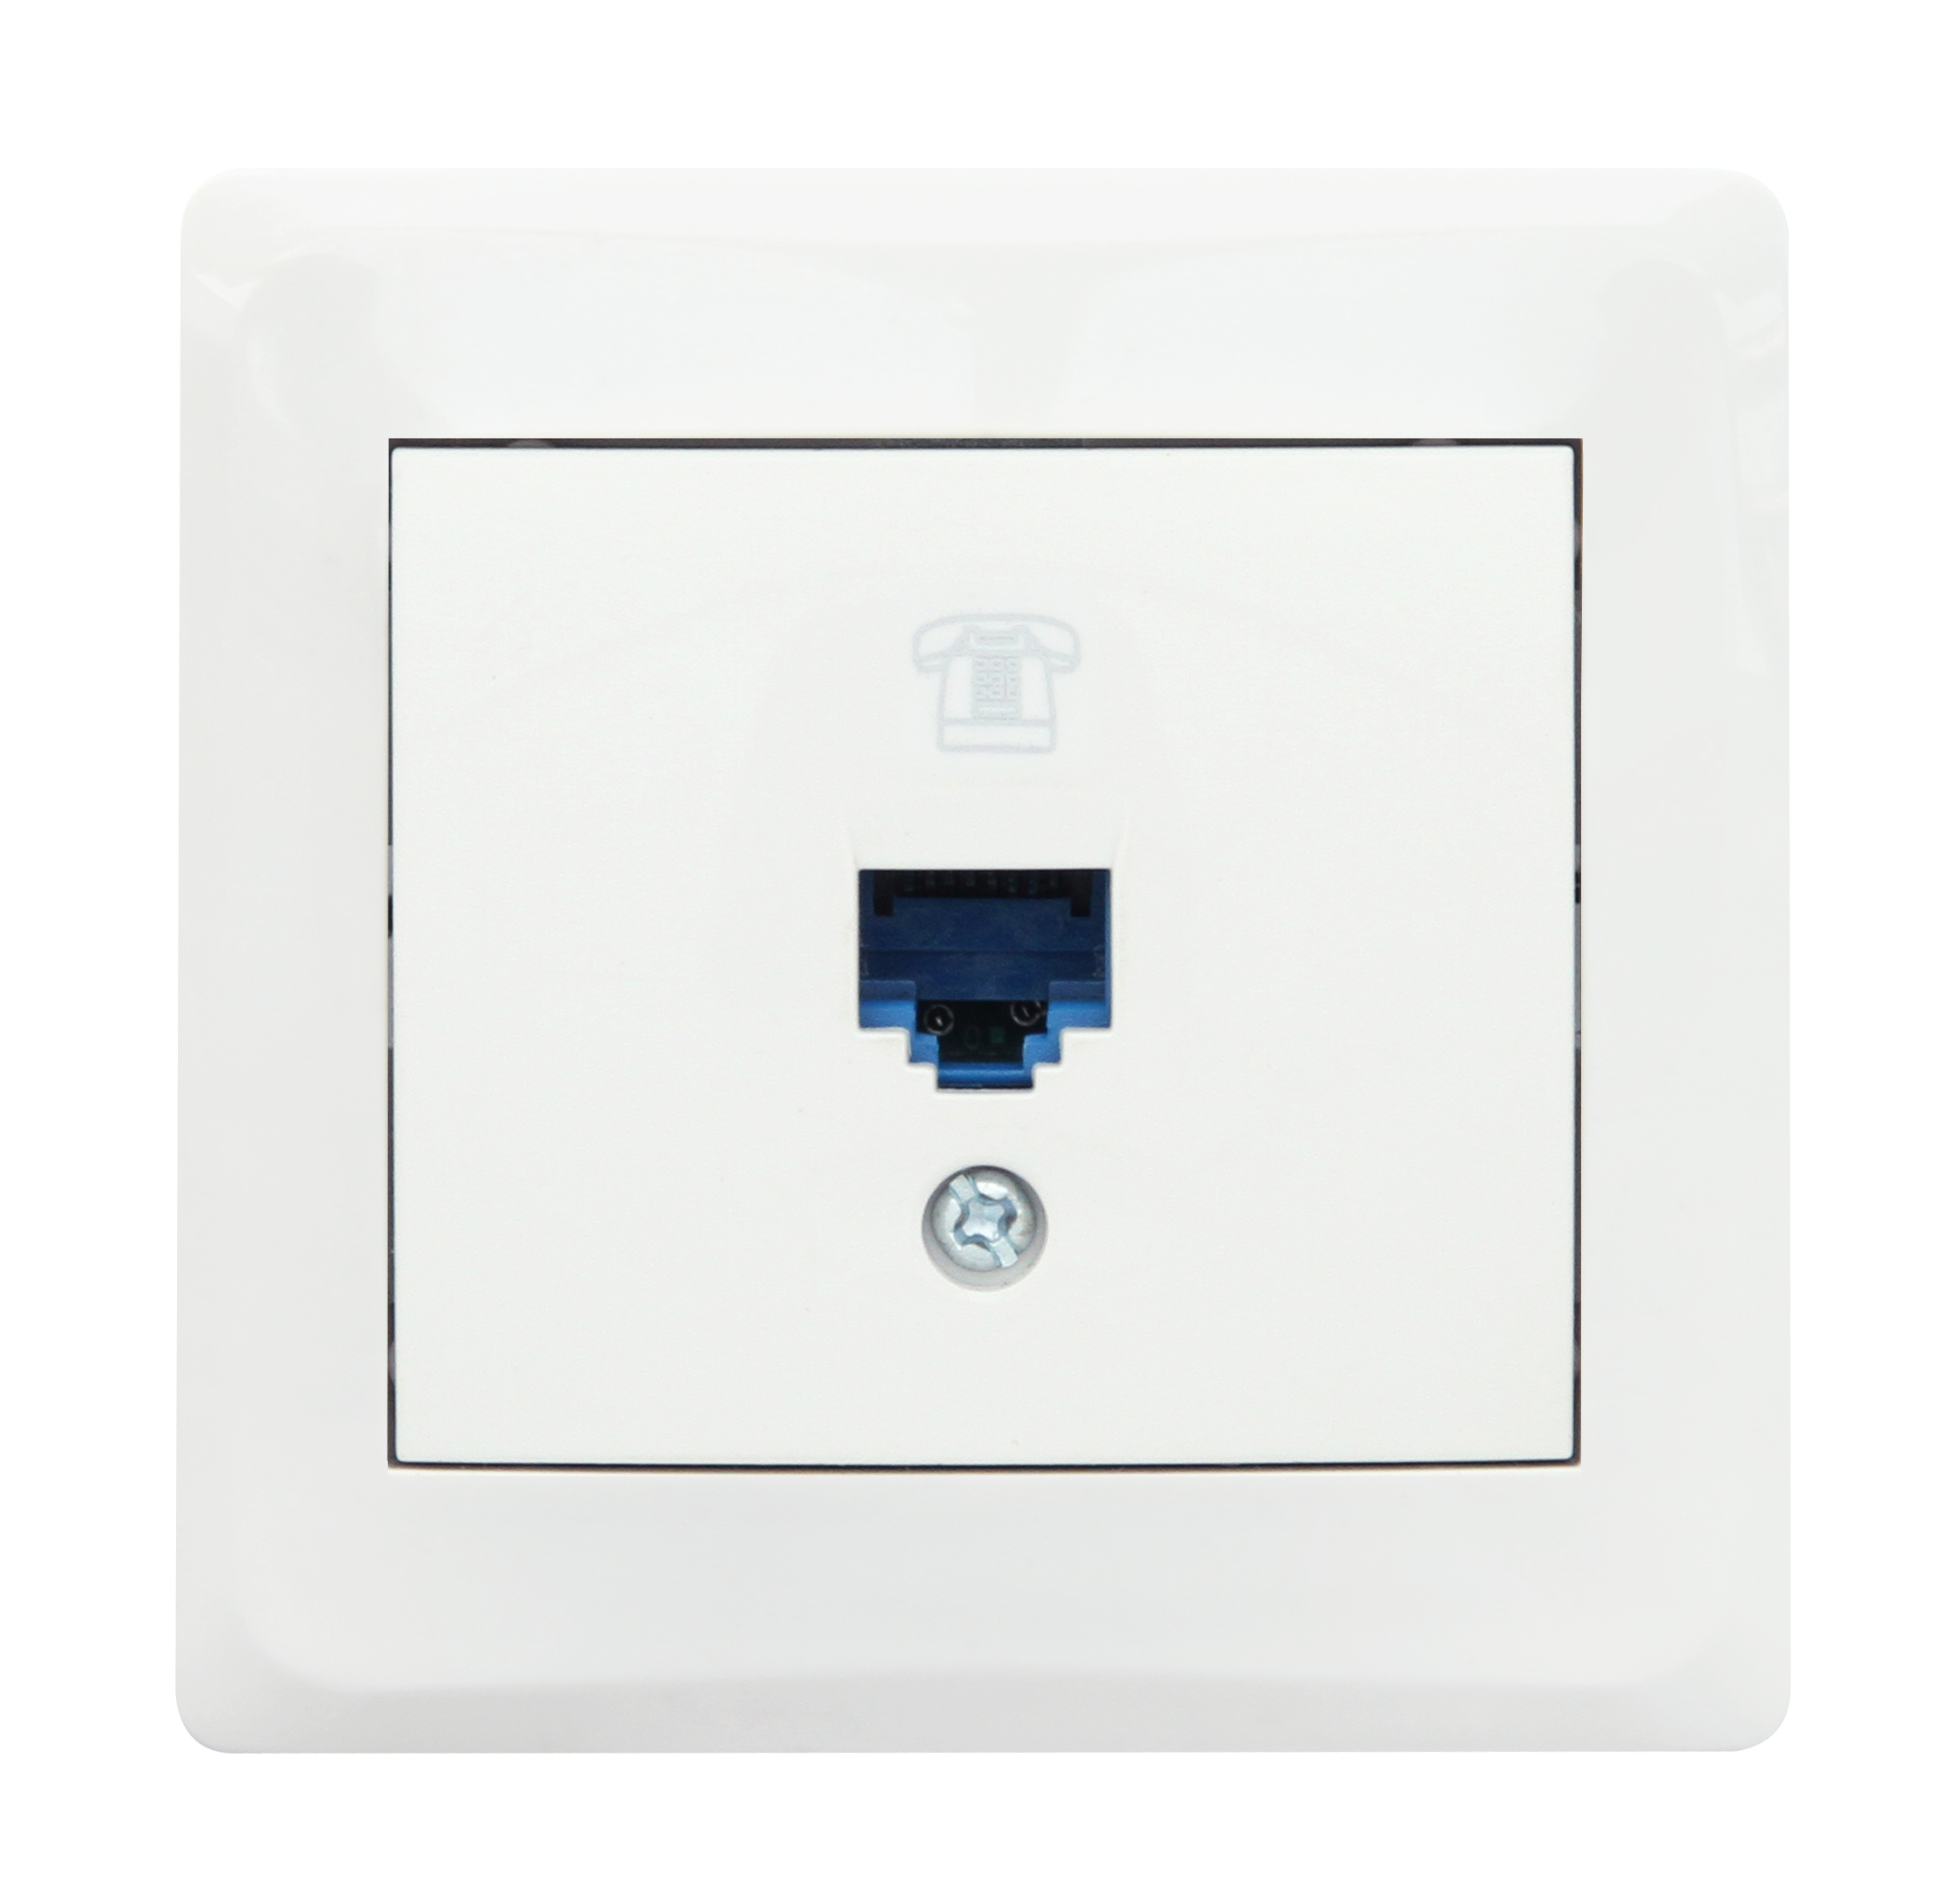 Numeris Telephone Socket Outlet -1 Gang